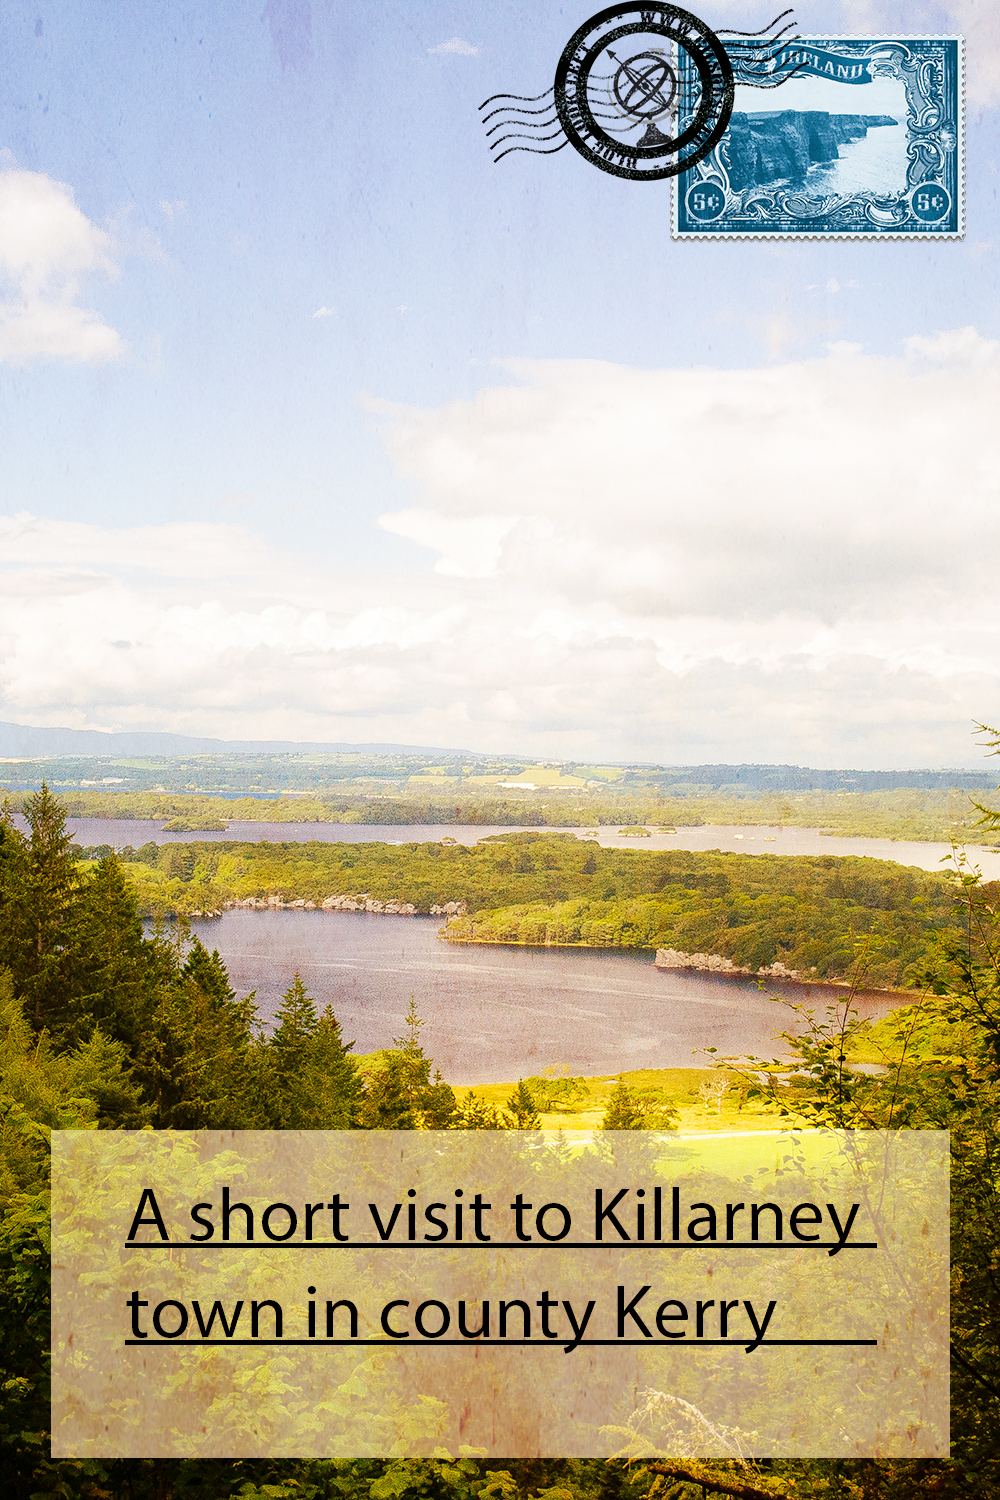 A short visit to Killarney town in county Kerry